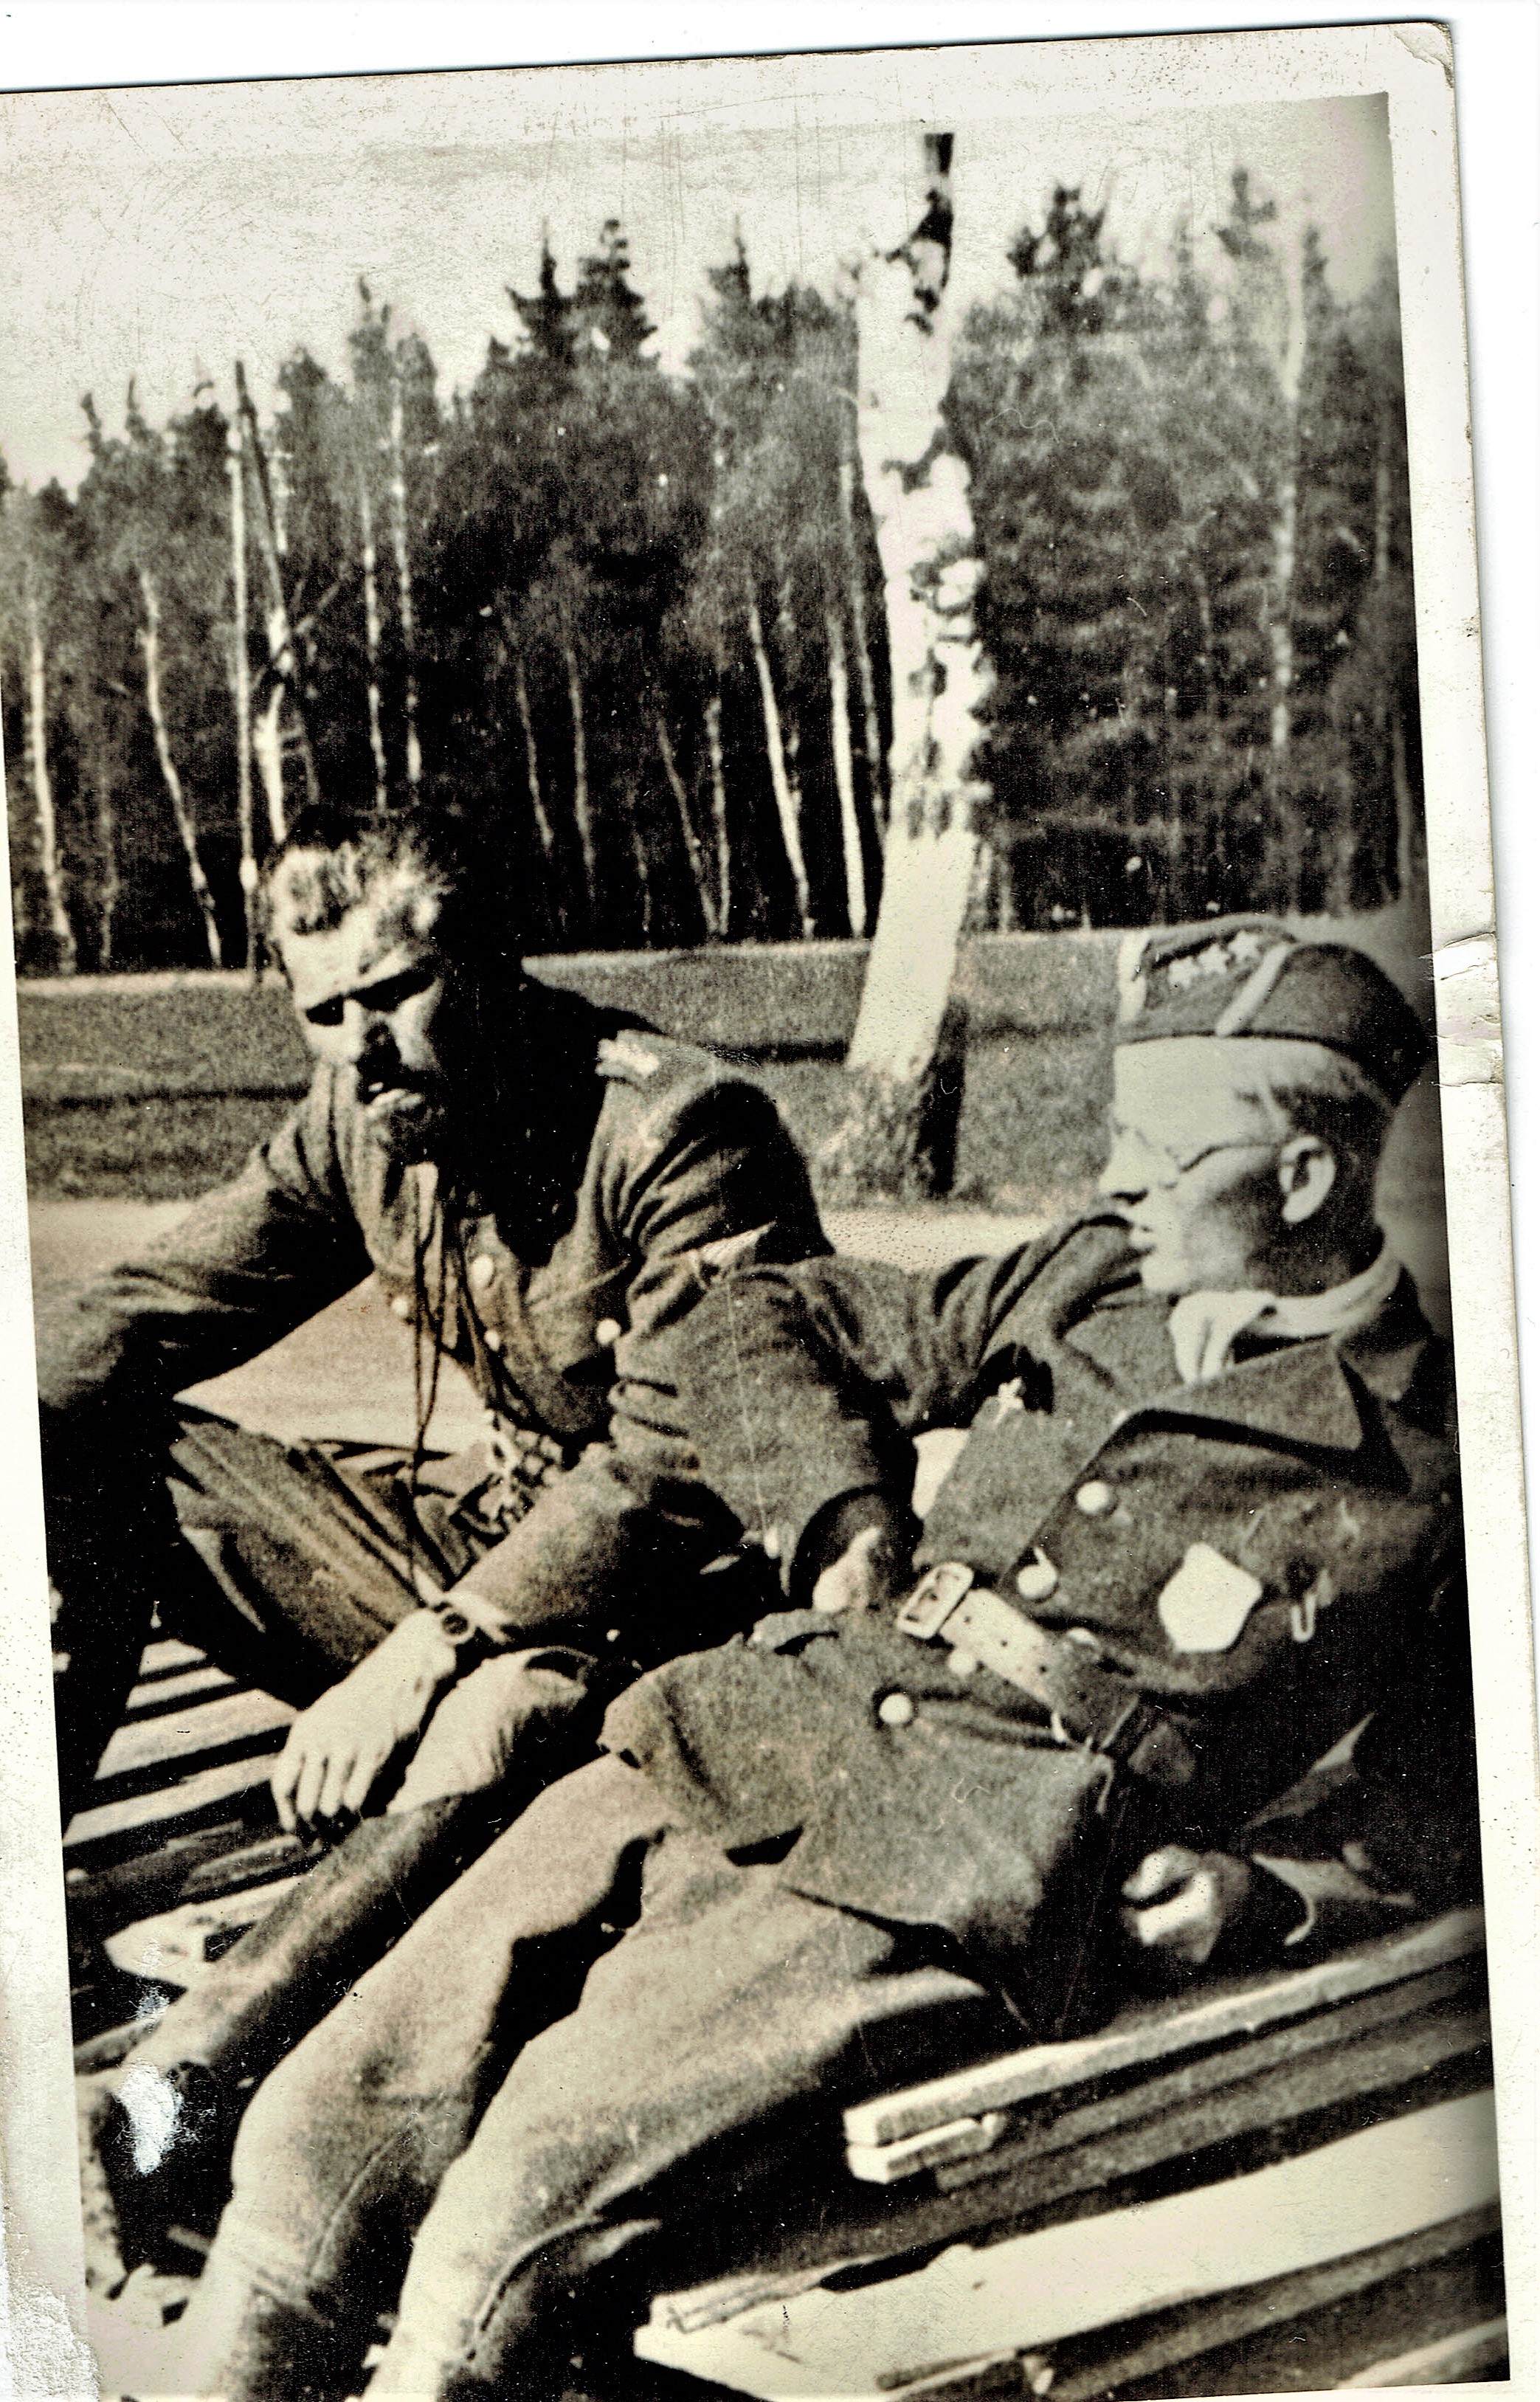 WWII soldiers in discussion